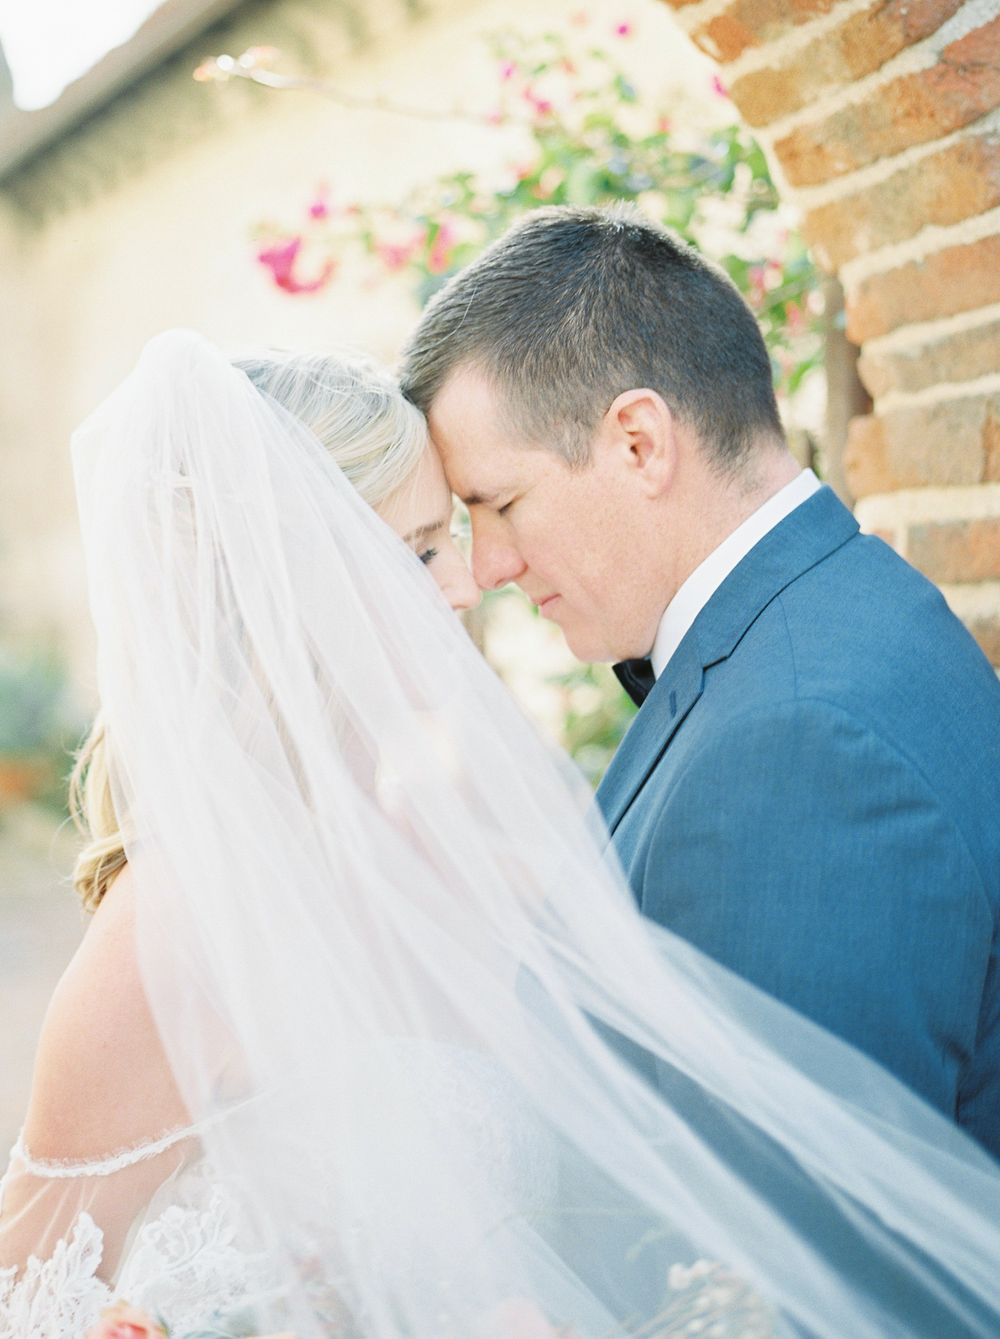 Wedding Portrait -Melissa Mae Photography - San Juan Mission Capistrano, California